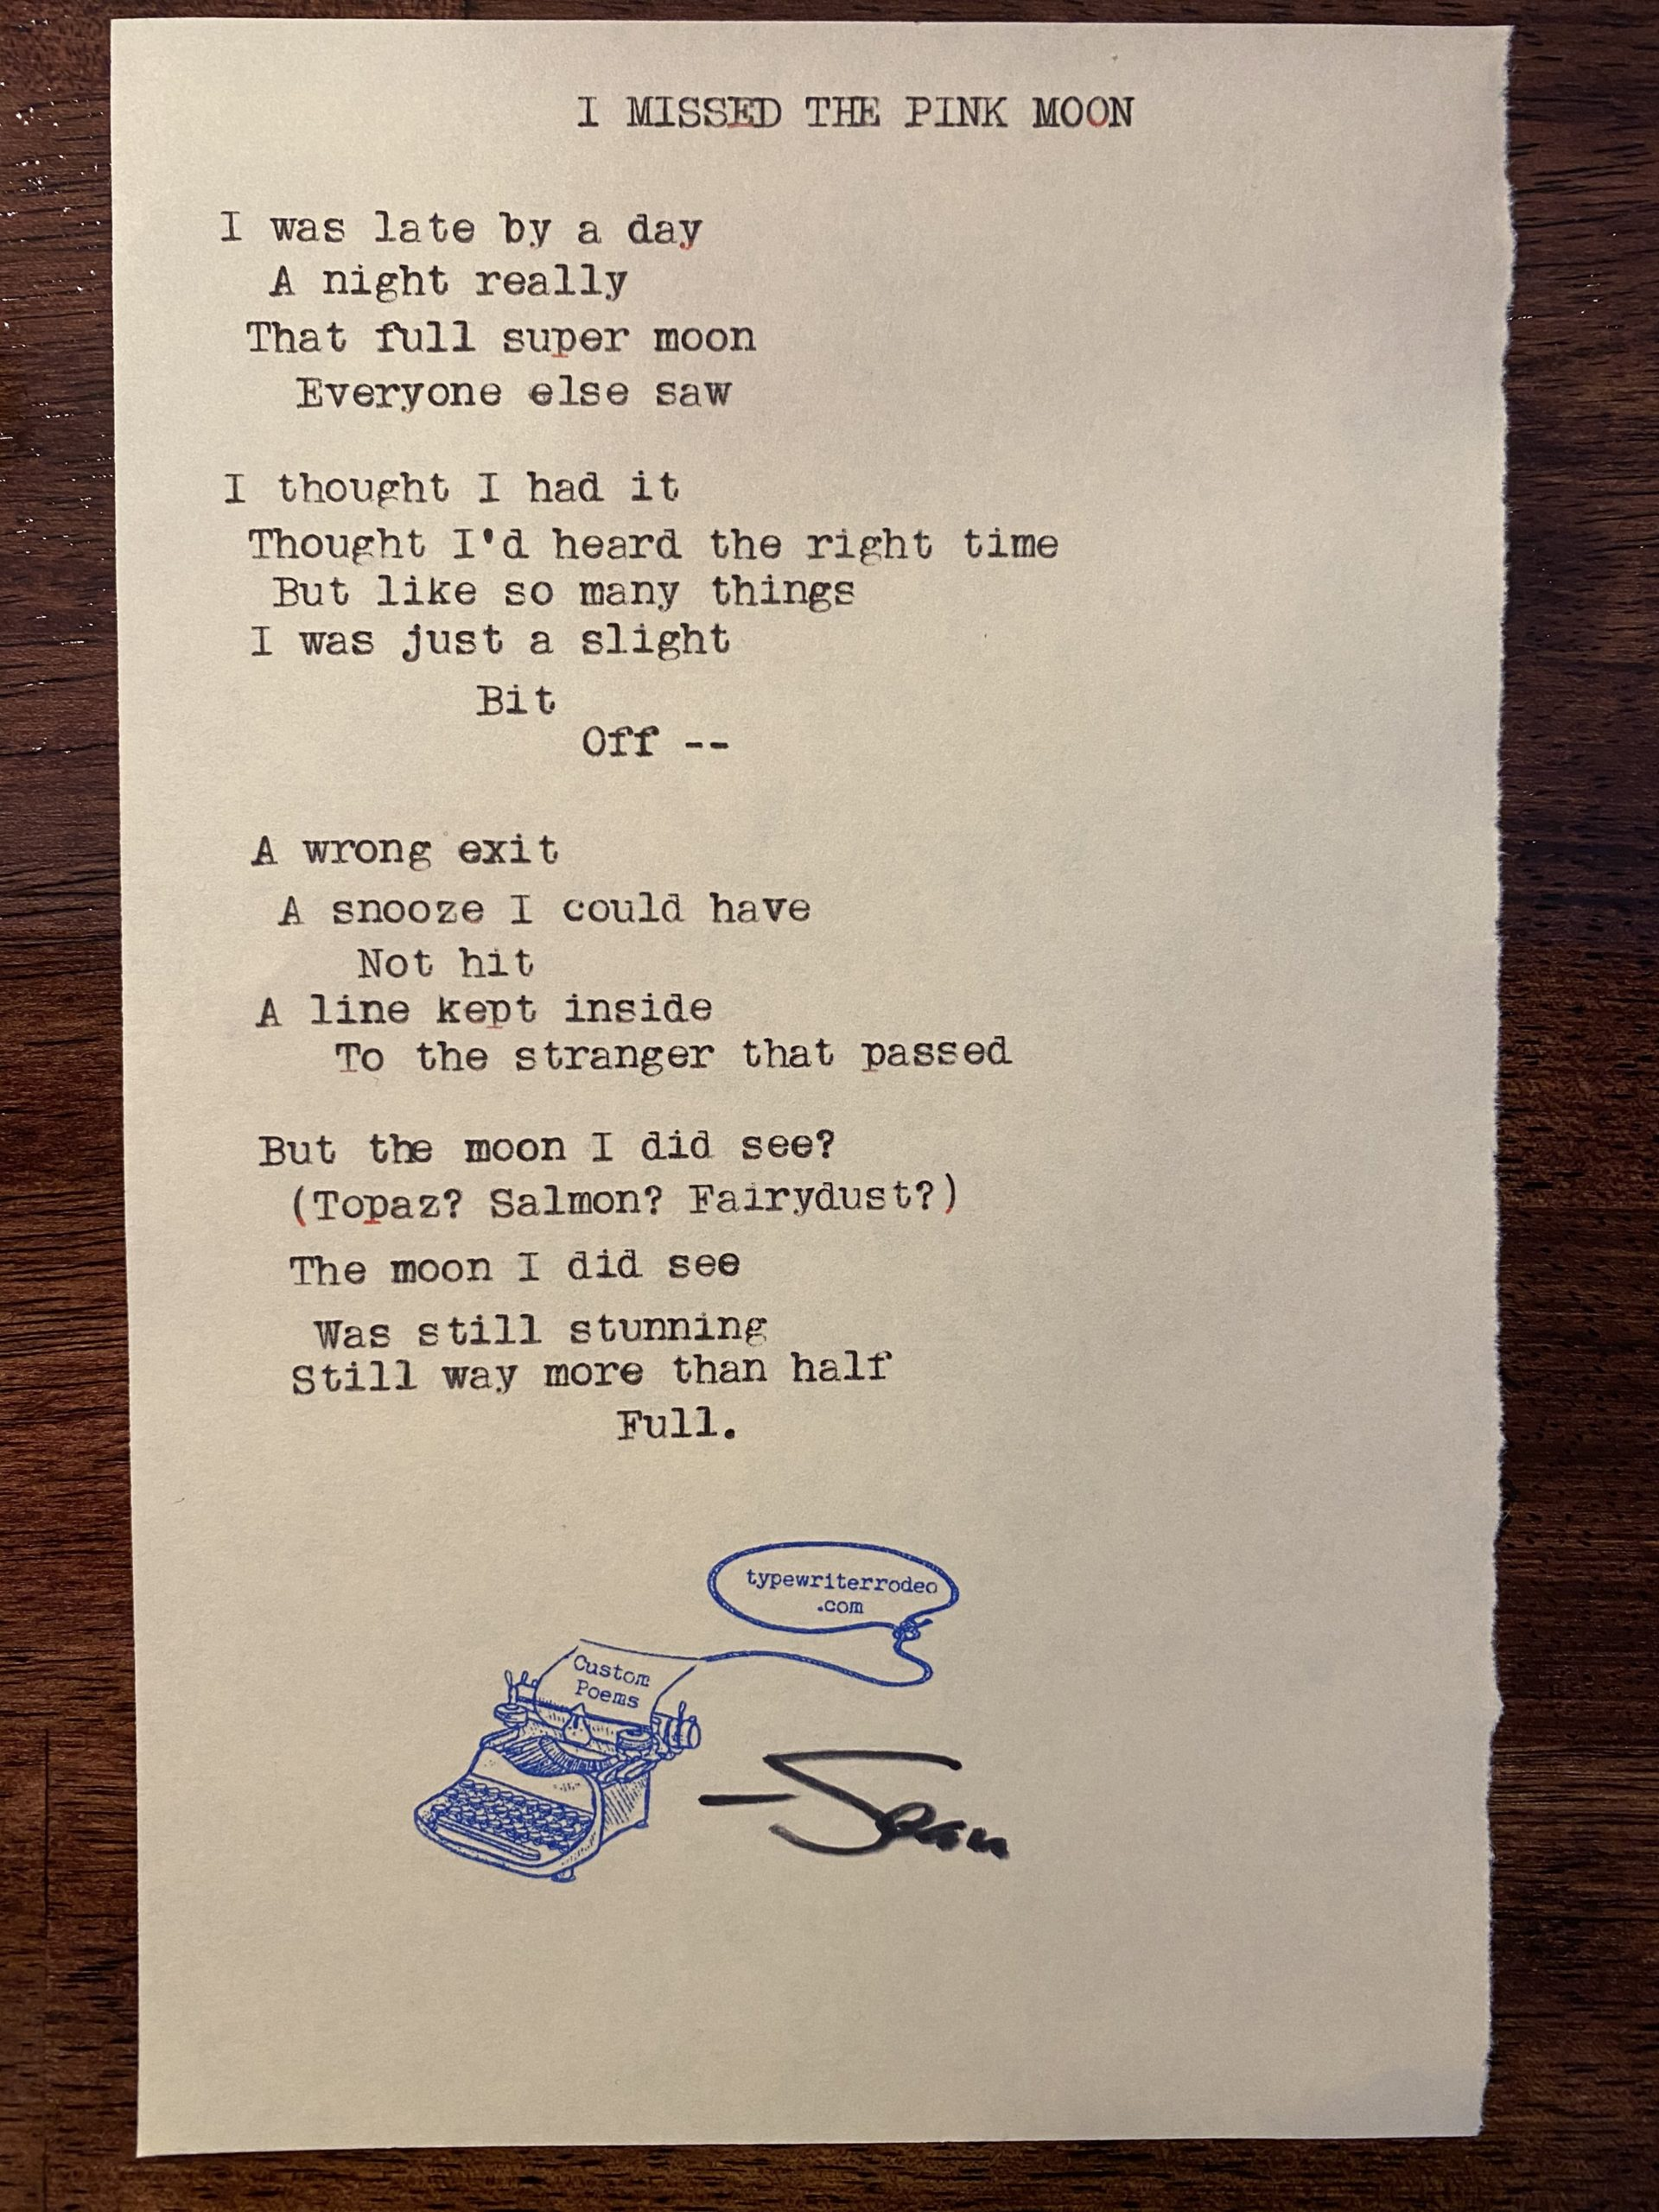 a photo of the typewritten poem